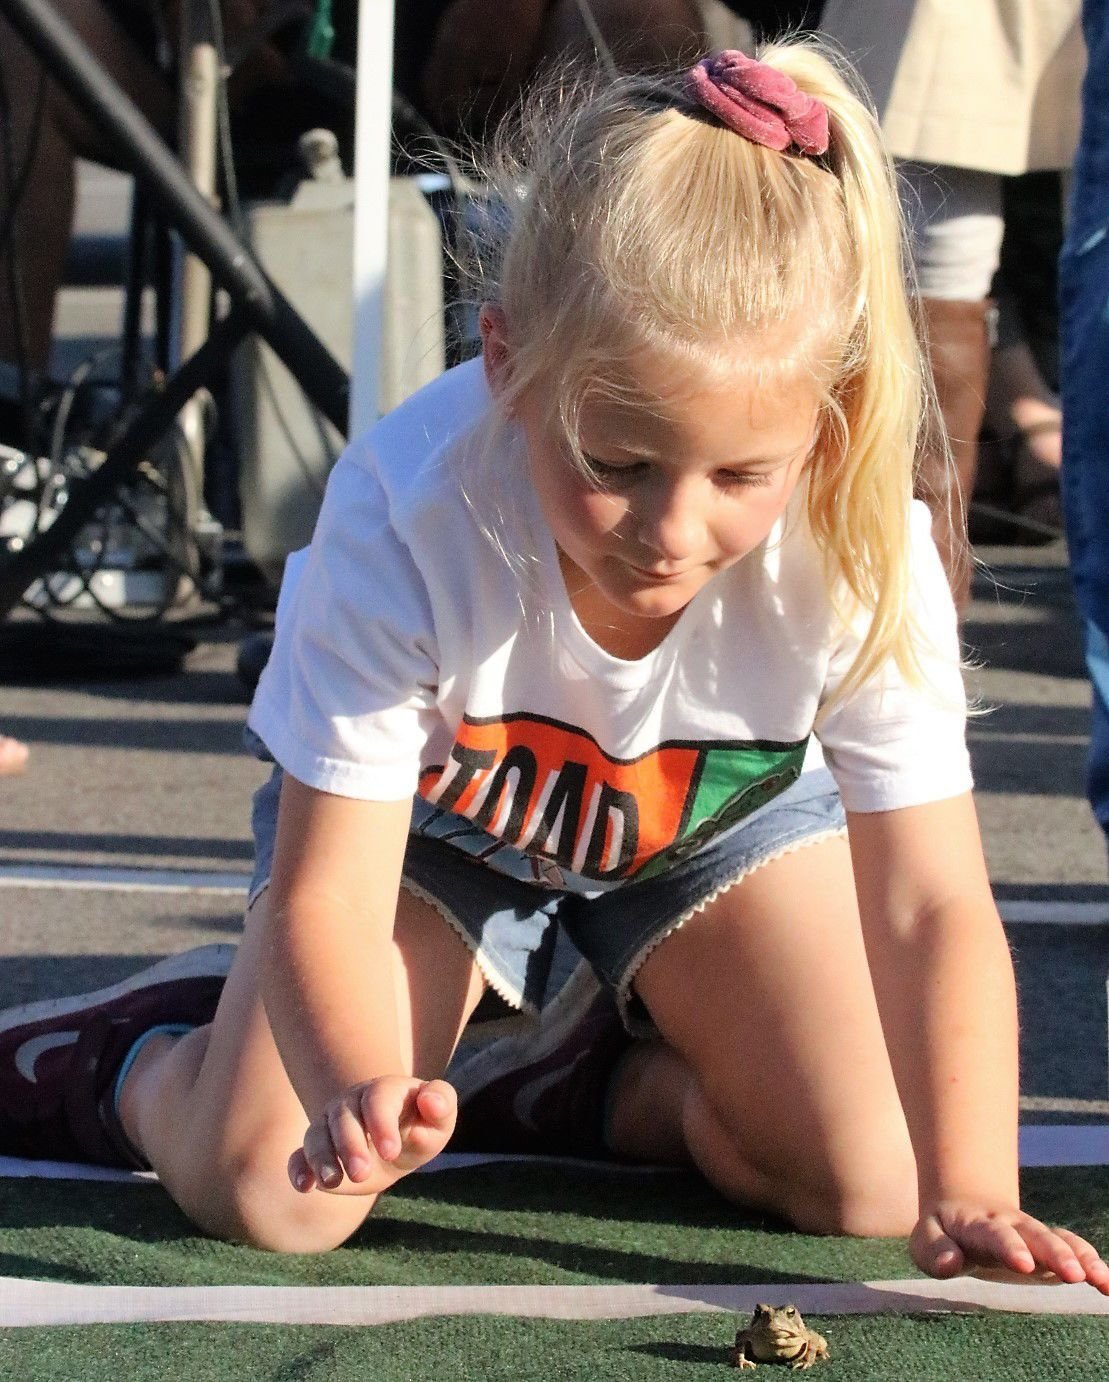 St. Joseph student out-hops competition in annual toad races 1